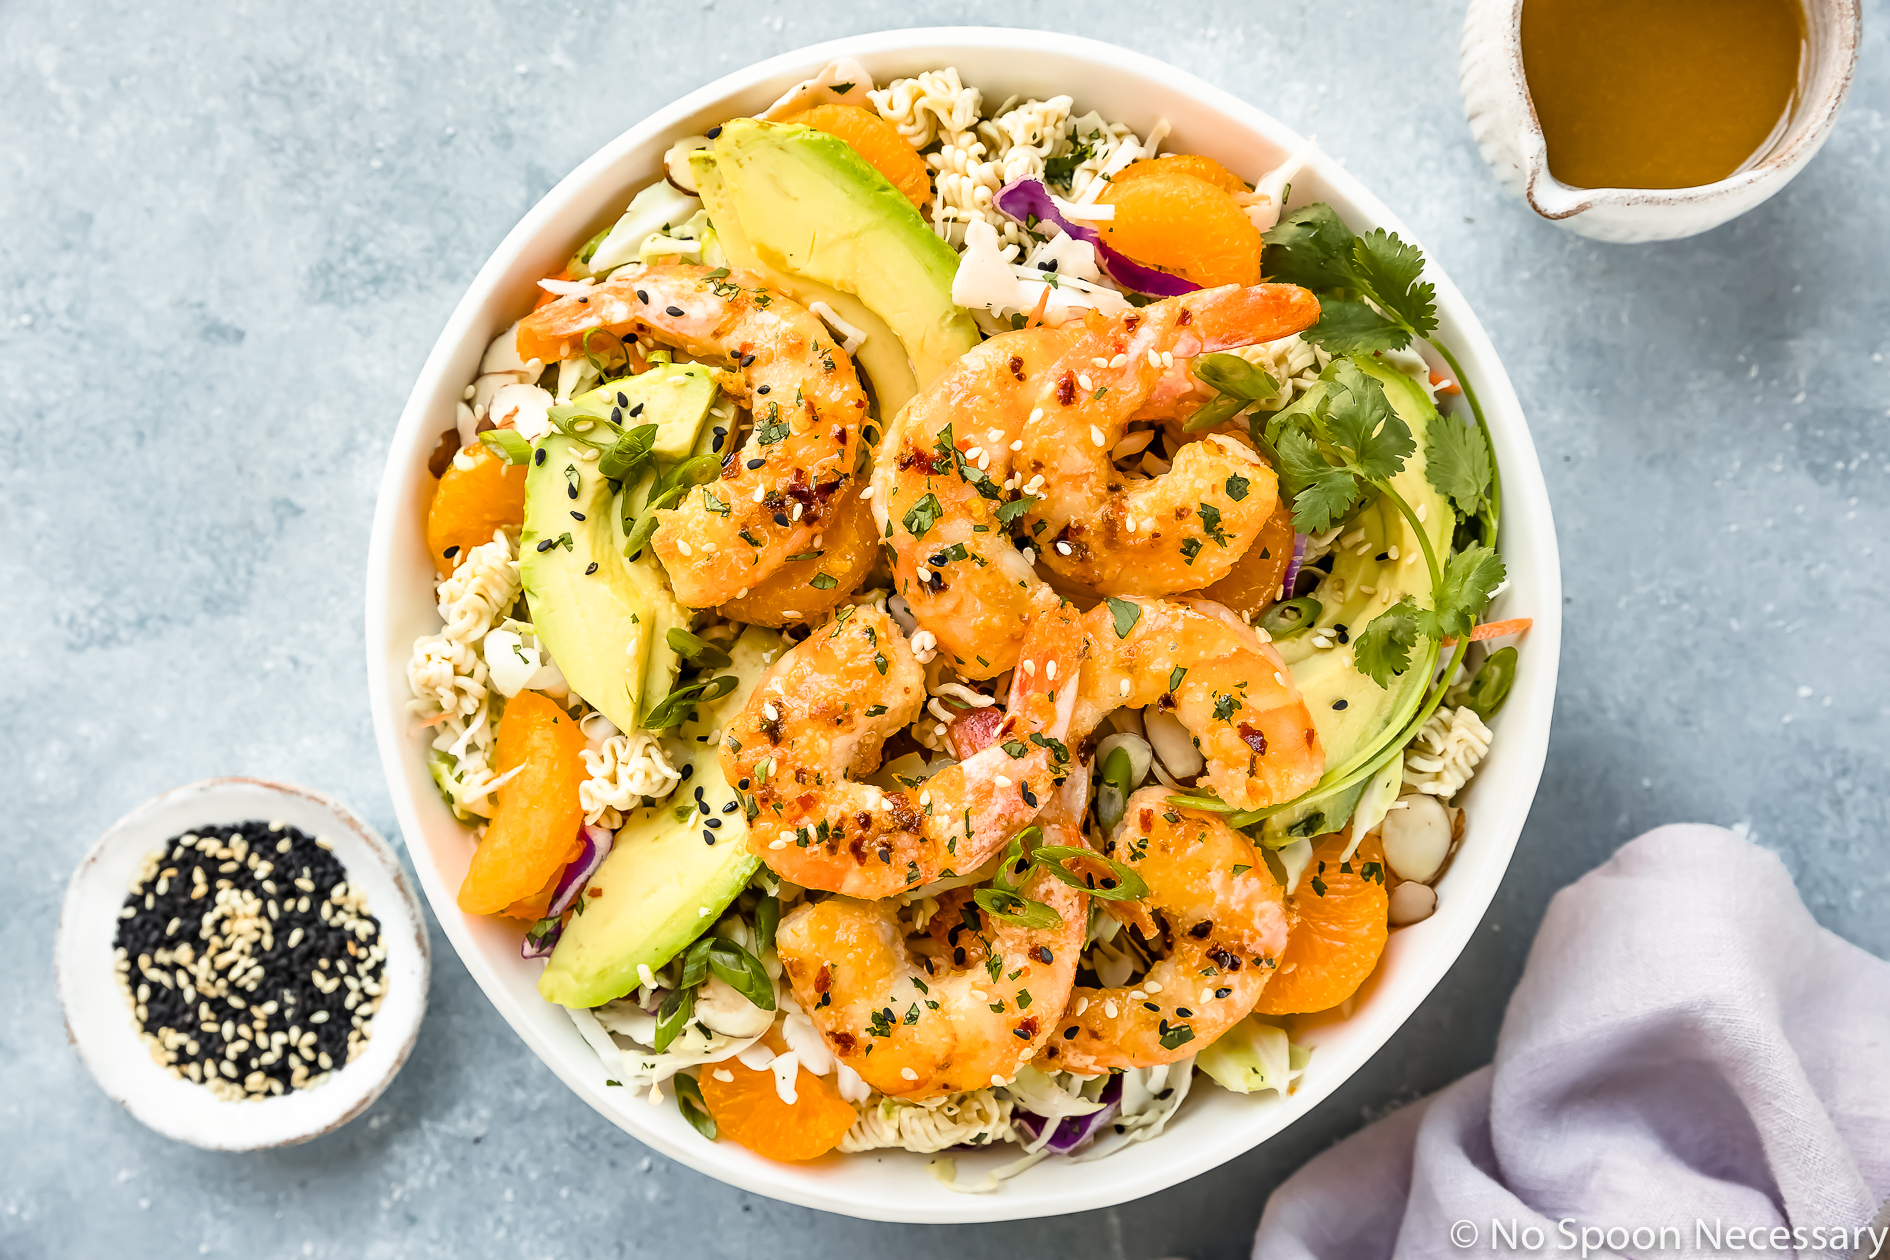 Overhead photo of Healthy Orange Shrimp Ramen Noodle Salad with coleslaw and sliced avocado in a white bowl with a ramekin of sesame seeds, a purple linen and a small jar of Asian dressing surrounding the bowl.